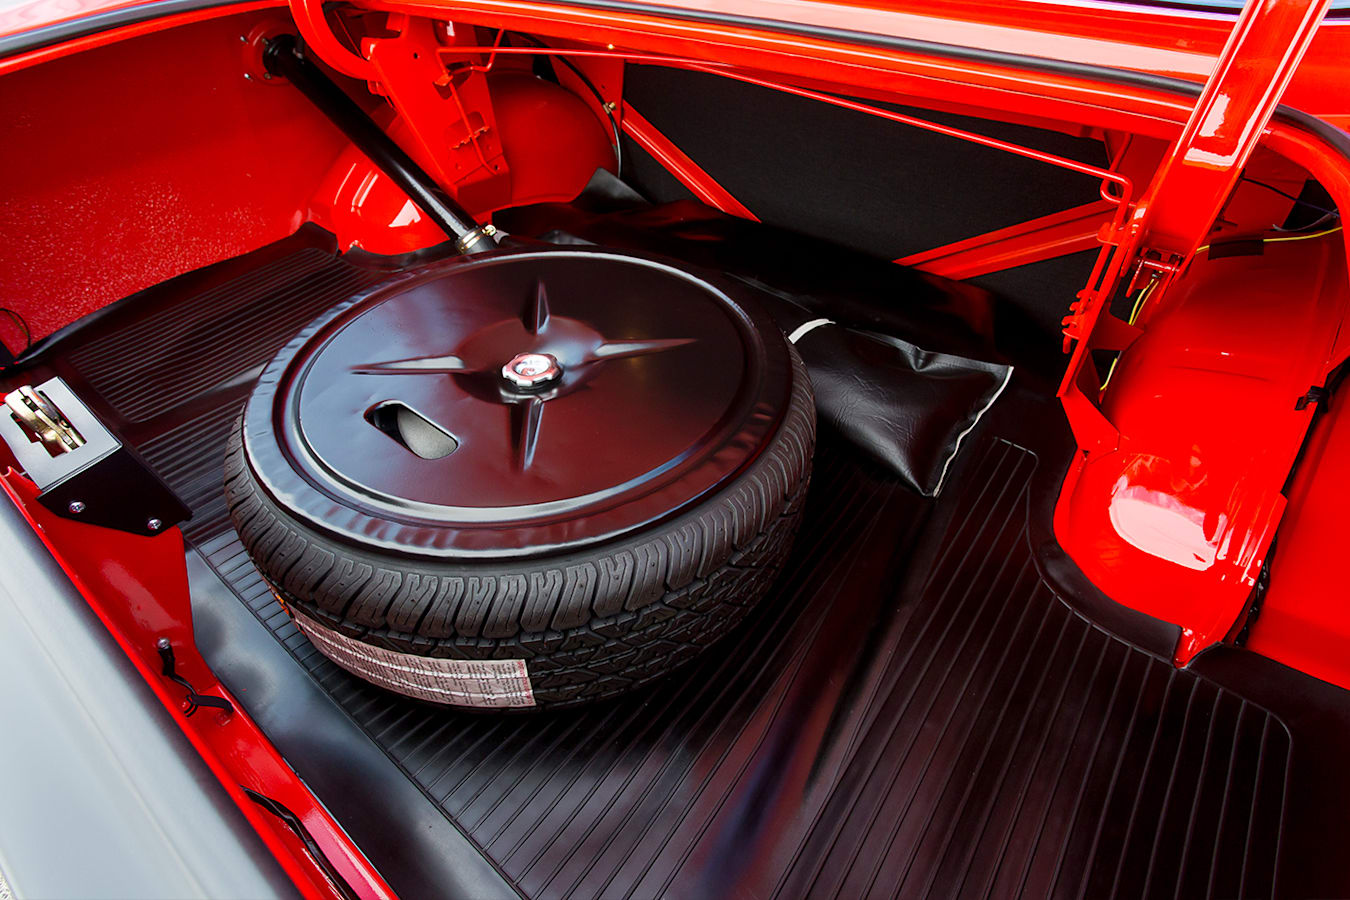 Ford Falcon XB GT boot